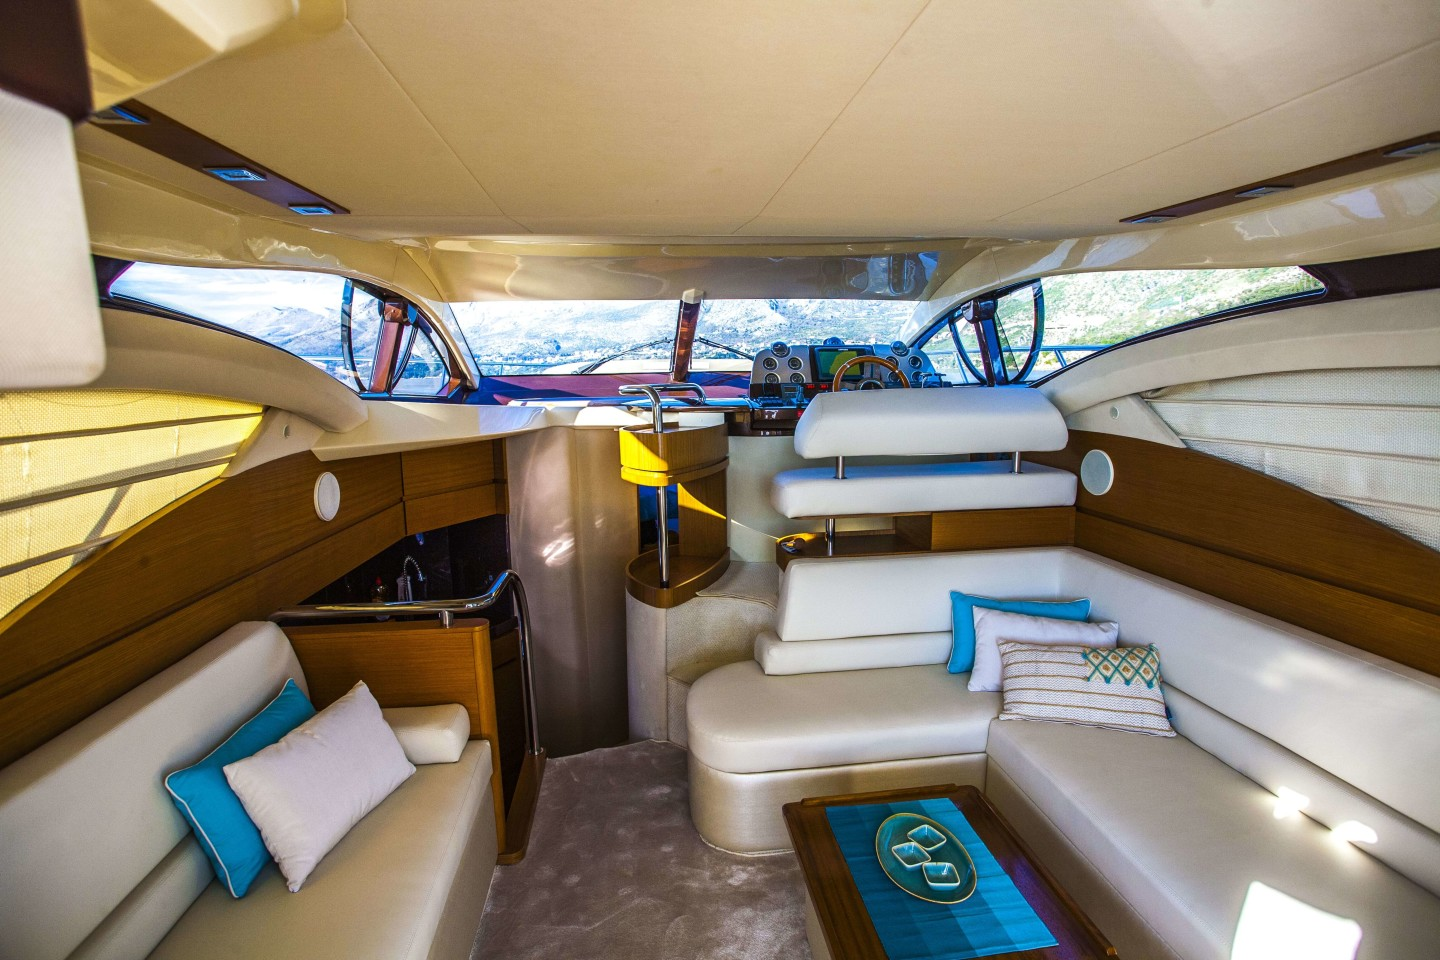 azimut 43 dubrovnik 22 saoon inside relaxing area